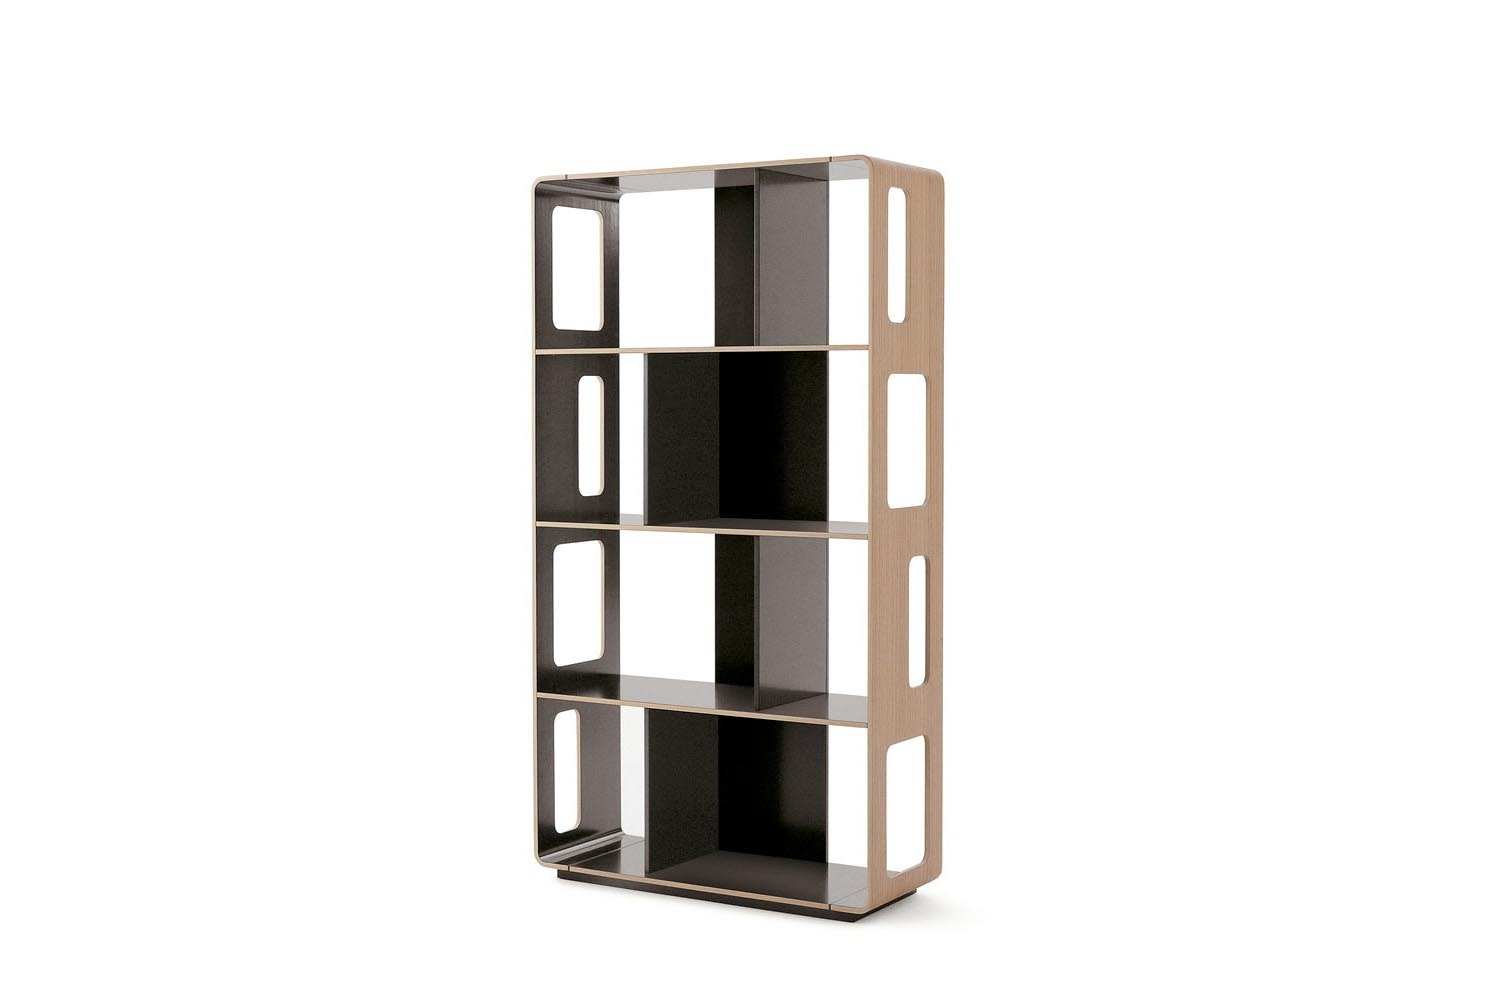 Arne Bookcase by Antonio Citterio for B&B Italia